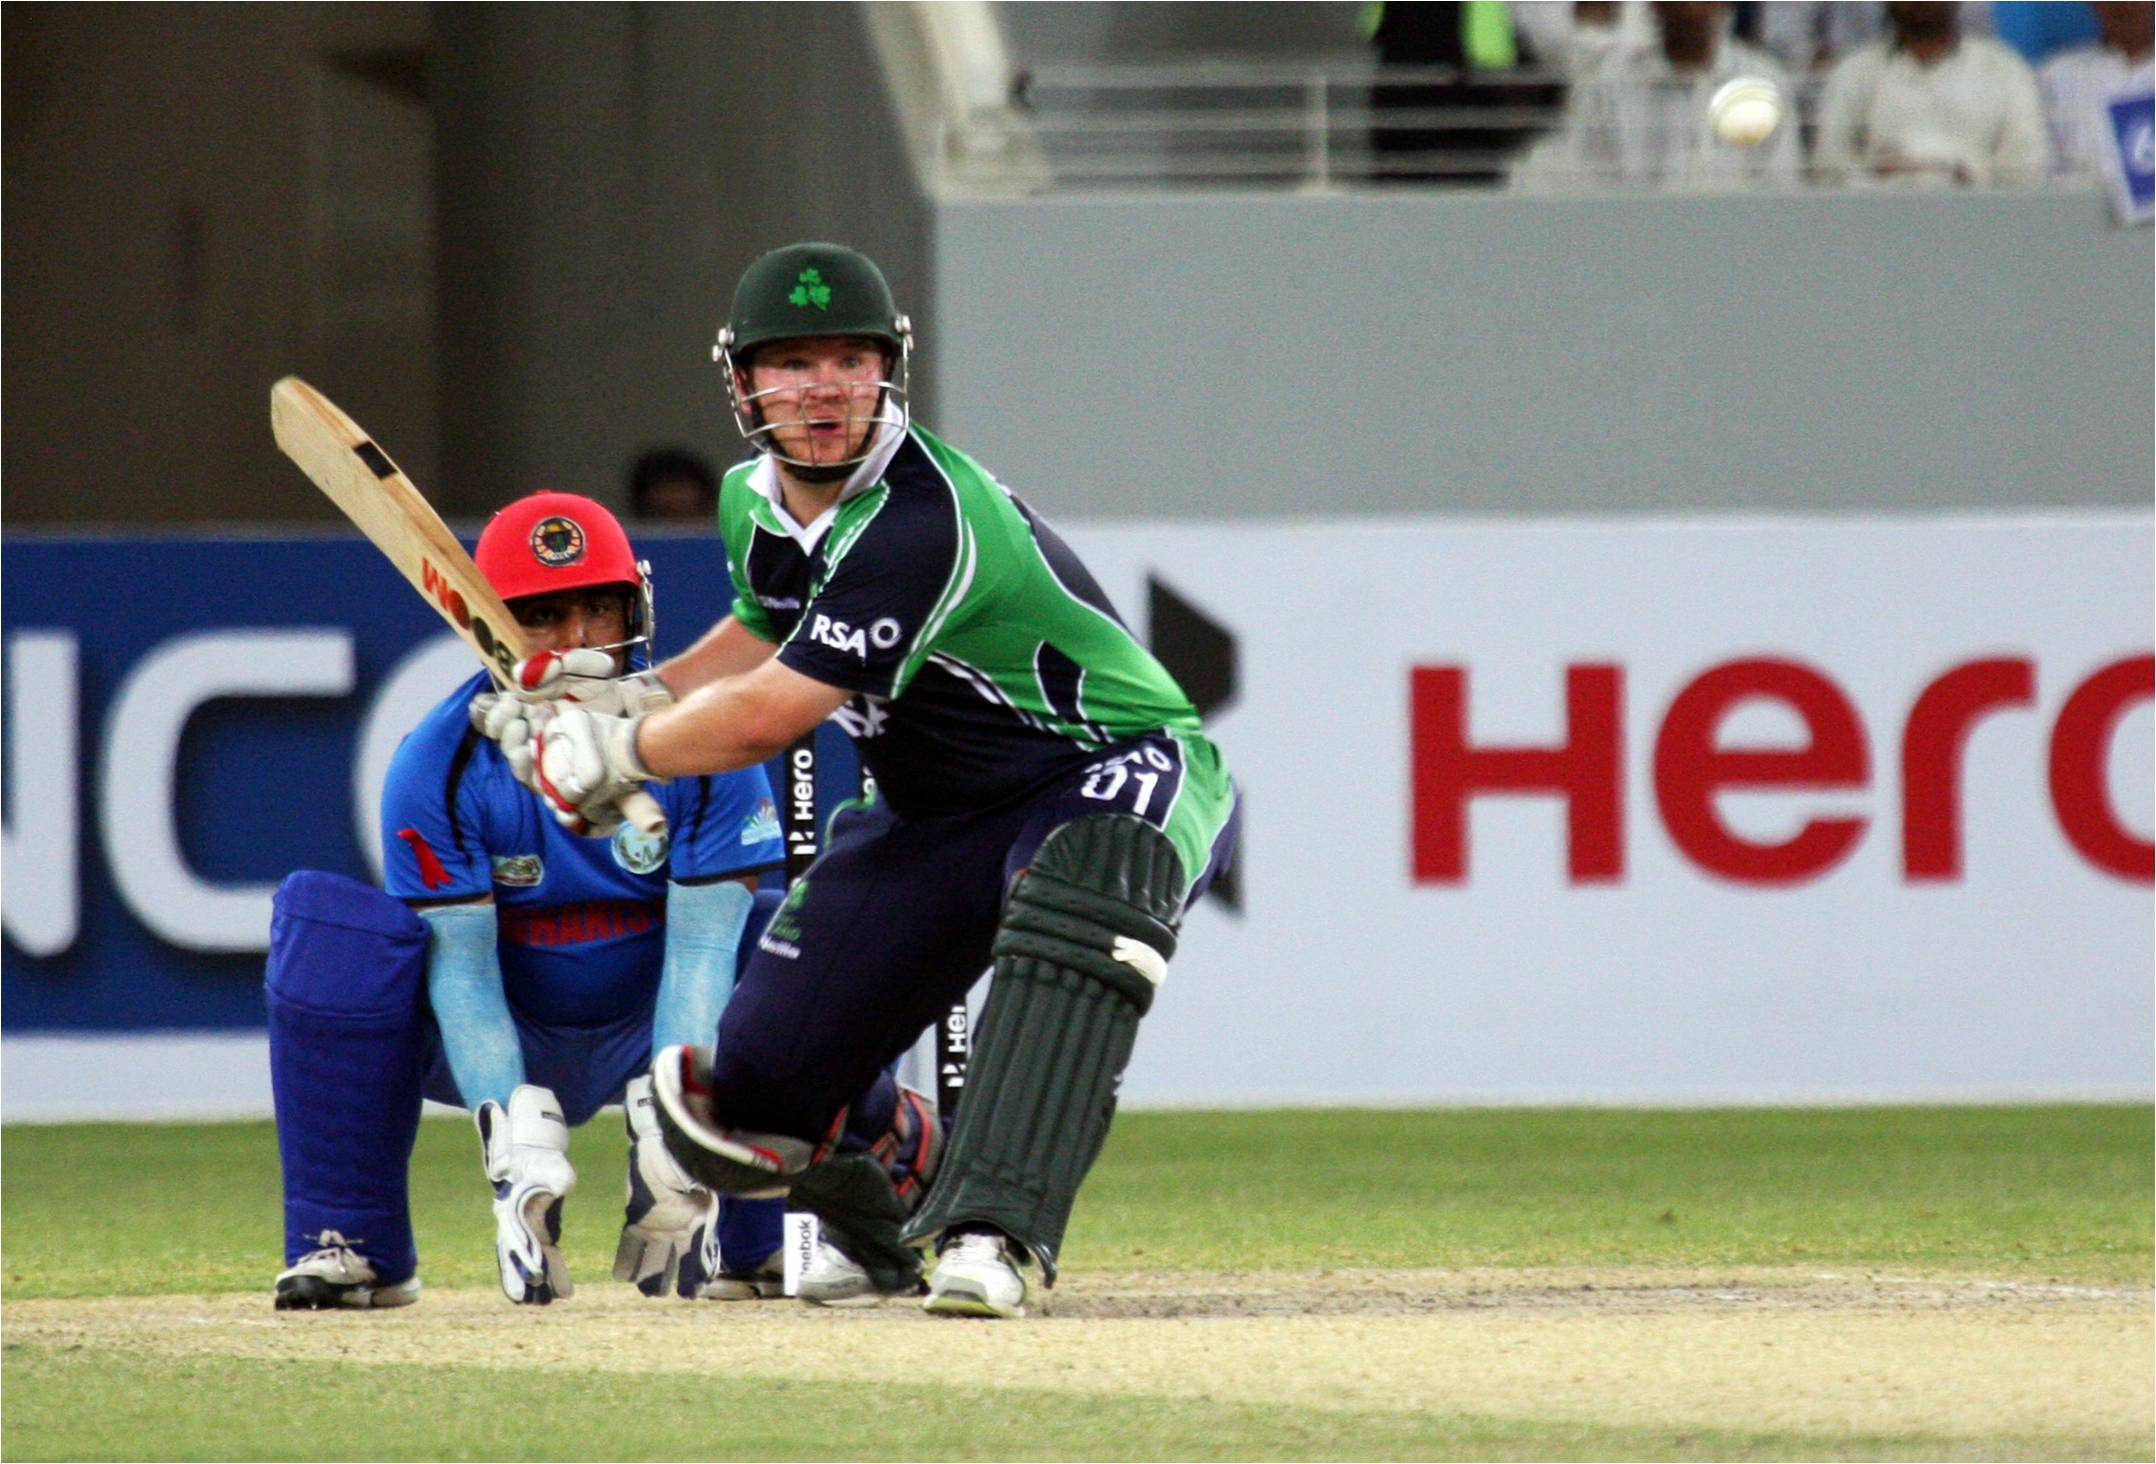 Ireland beat Afghanistan by 5 wickets in the Final of the ICC Twenty20 Qualifier